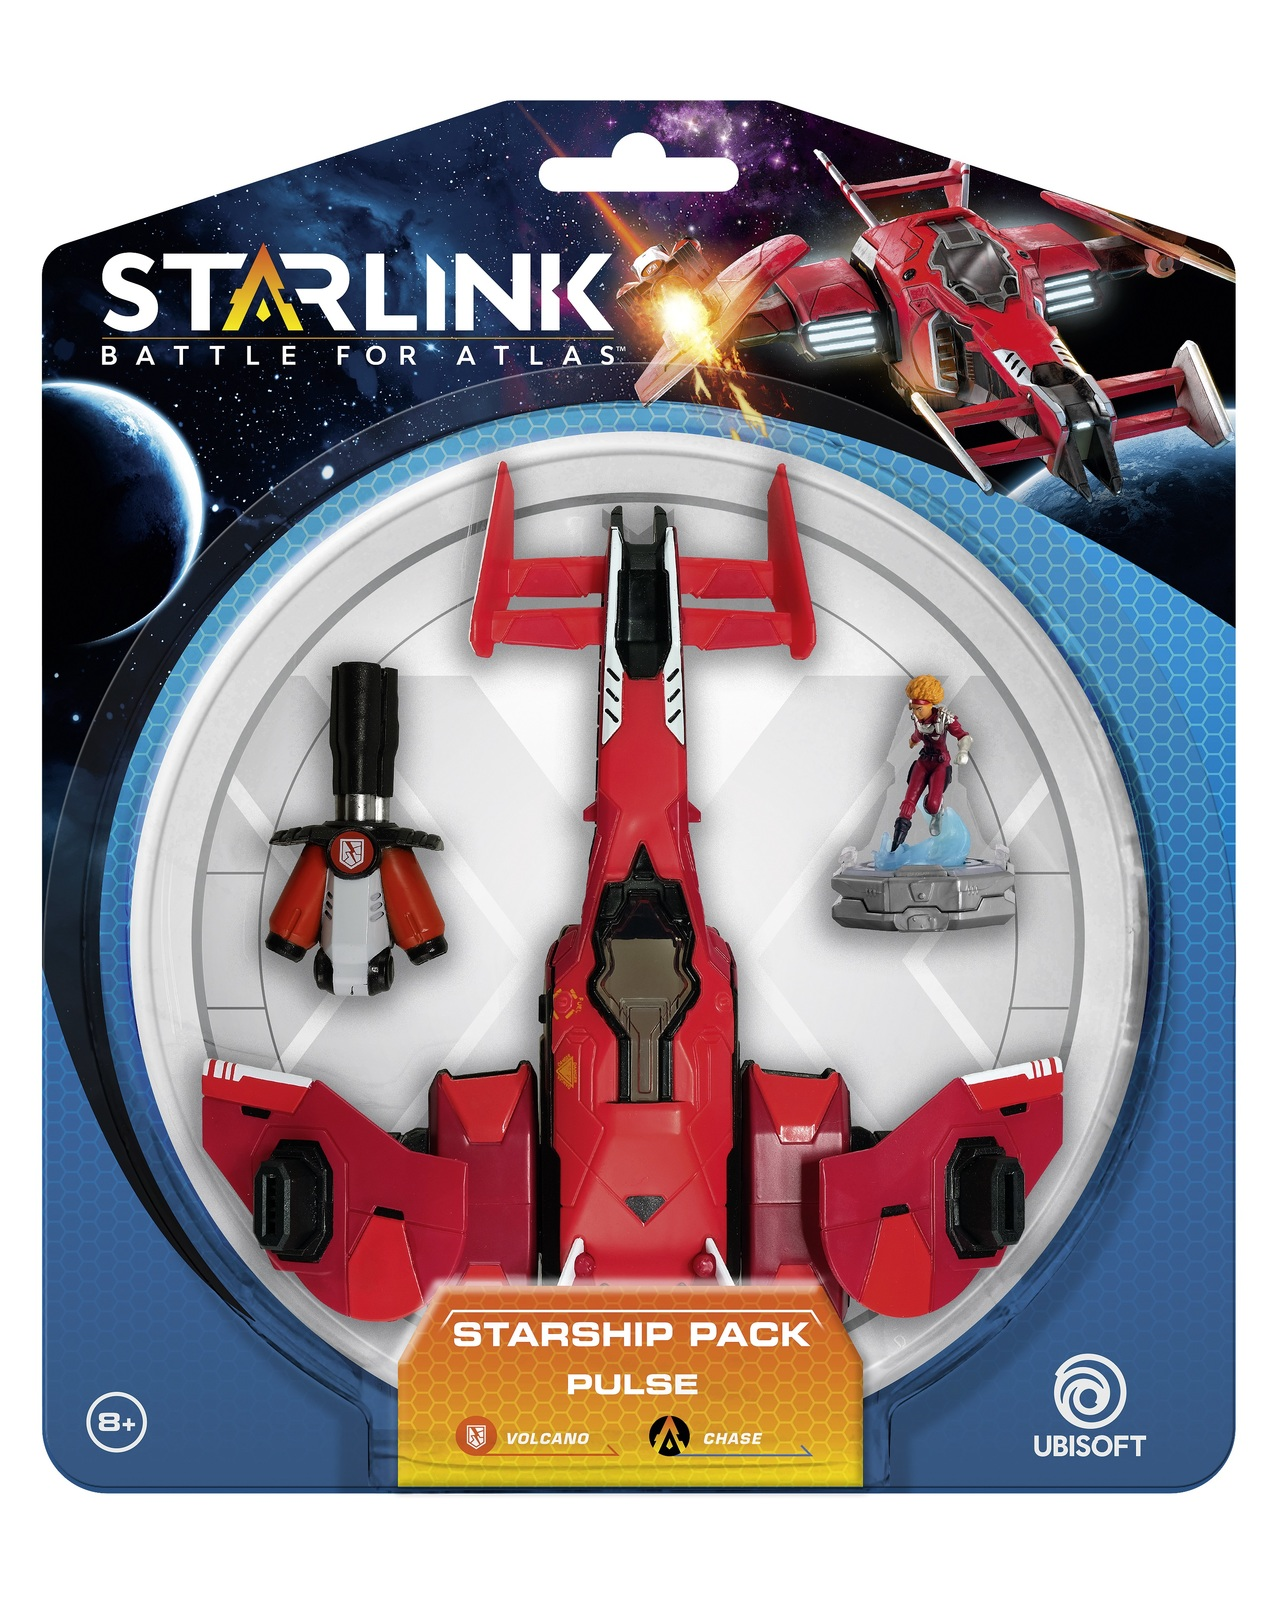 Starlink Starship Pack - Pulse for  image